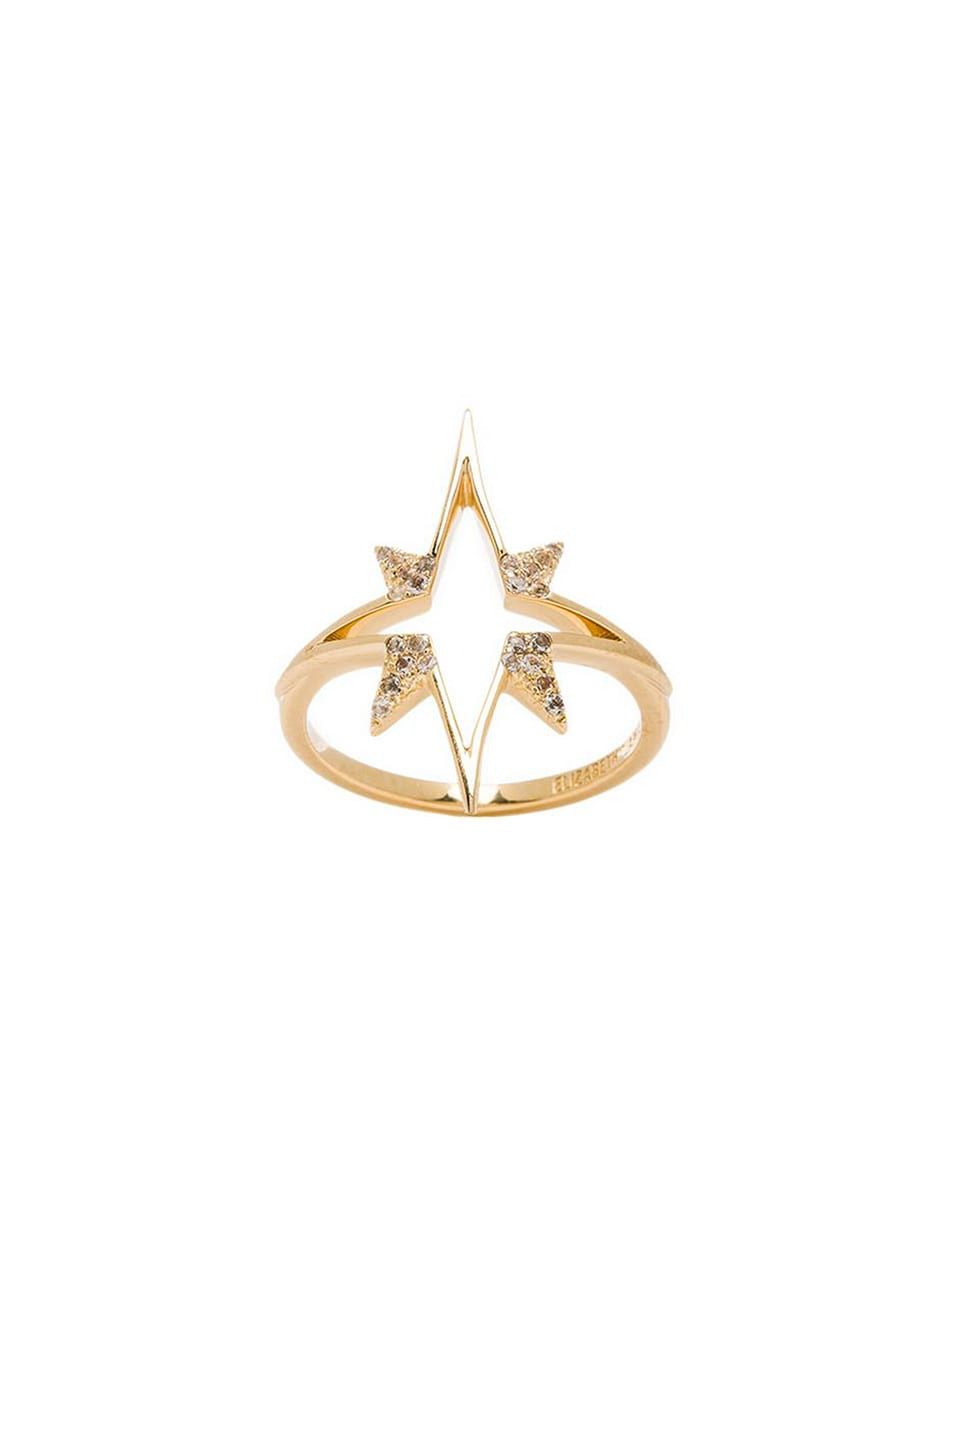 Elizabeth and James Astral Ring with White Topaz in Gold